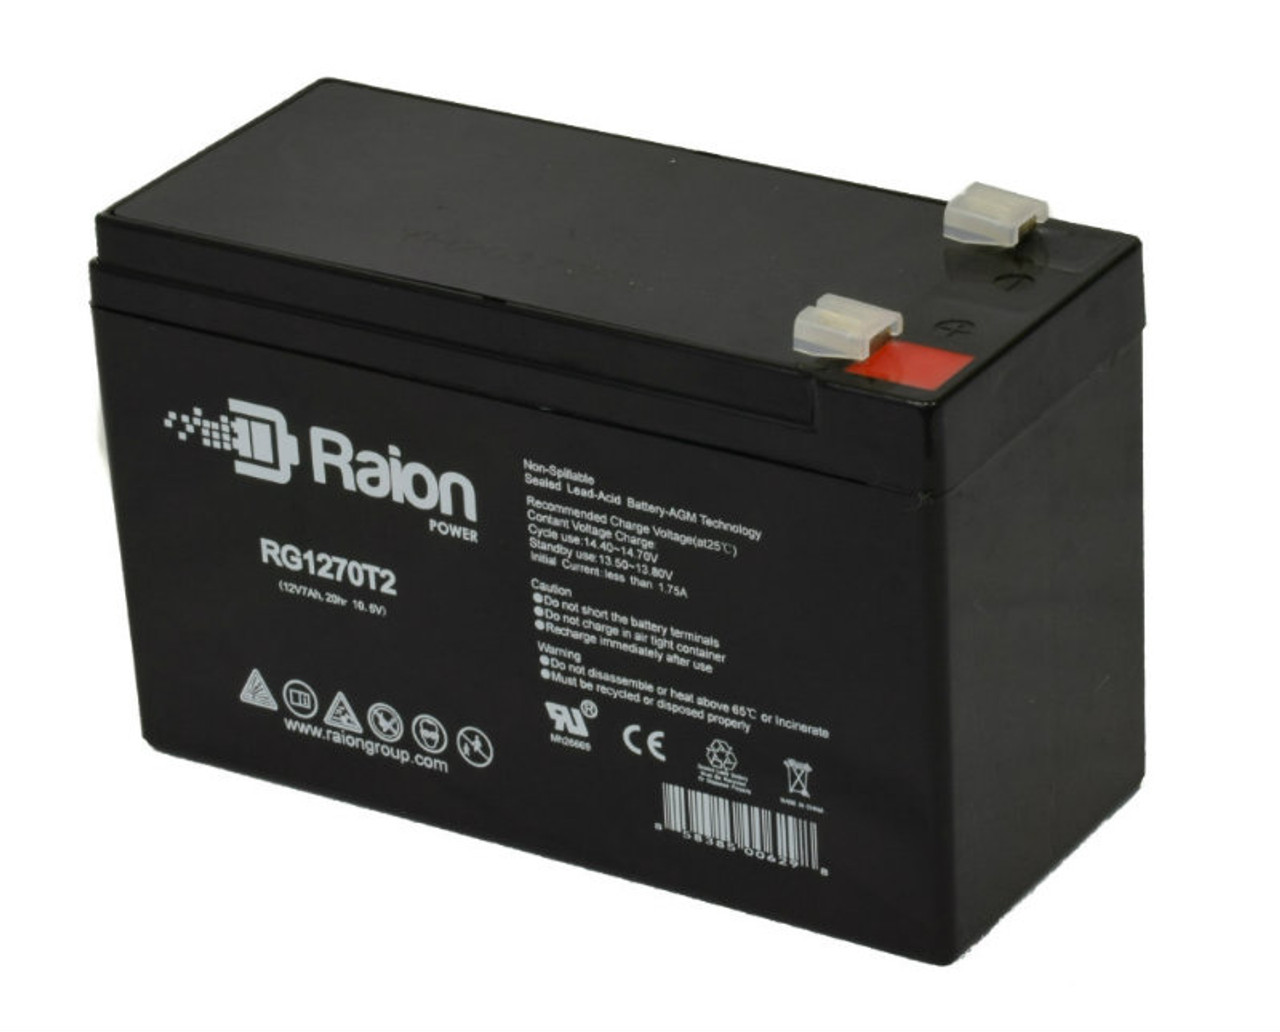 Raion Power RG1270T1 Replacement Battery for Kung Long WP8-12